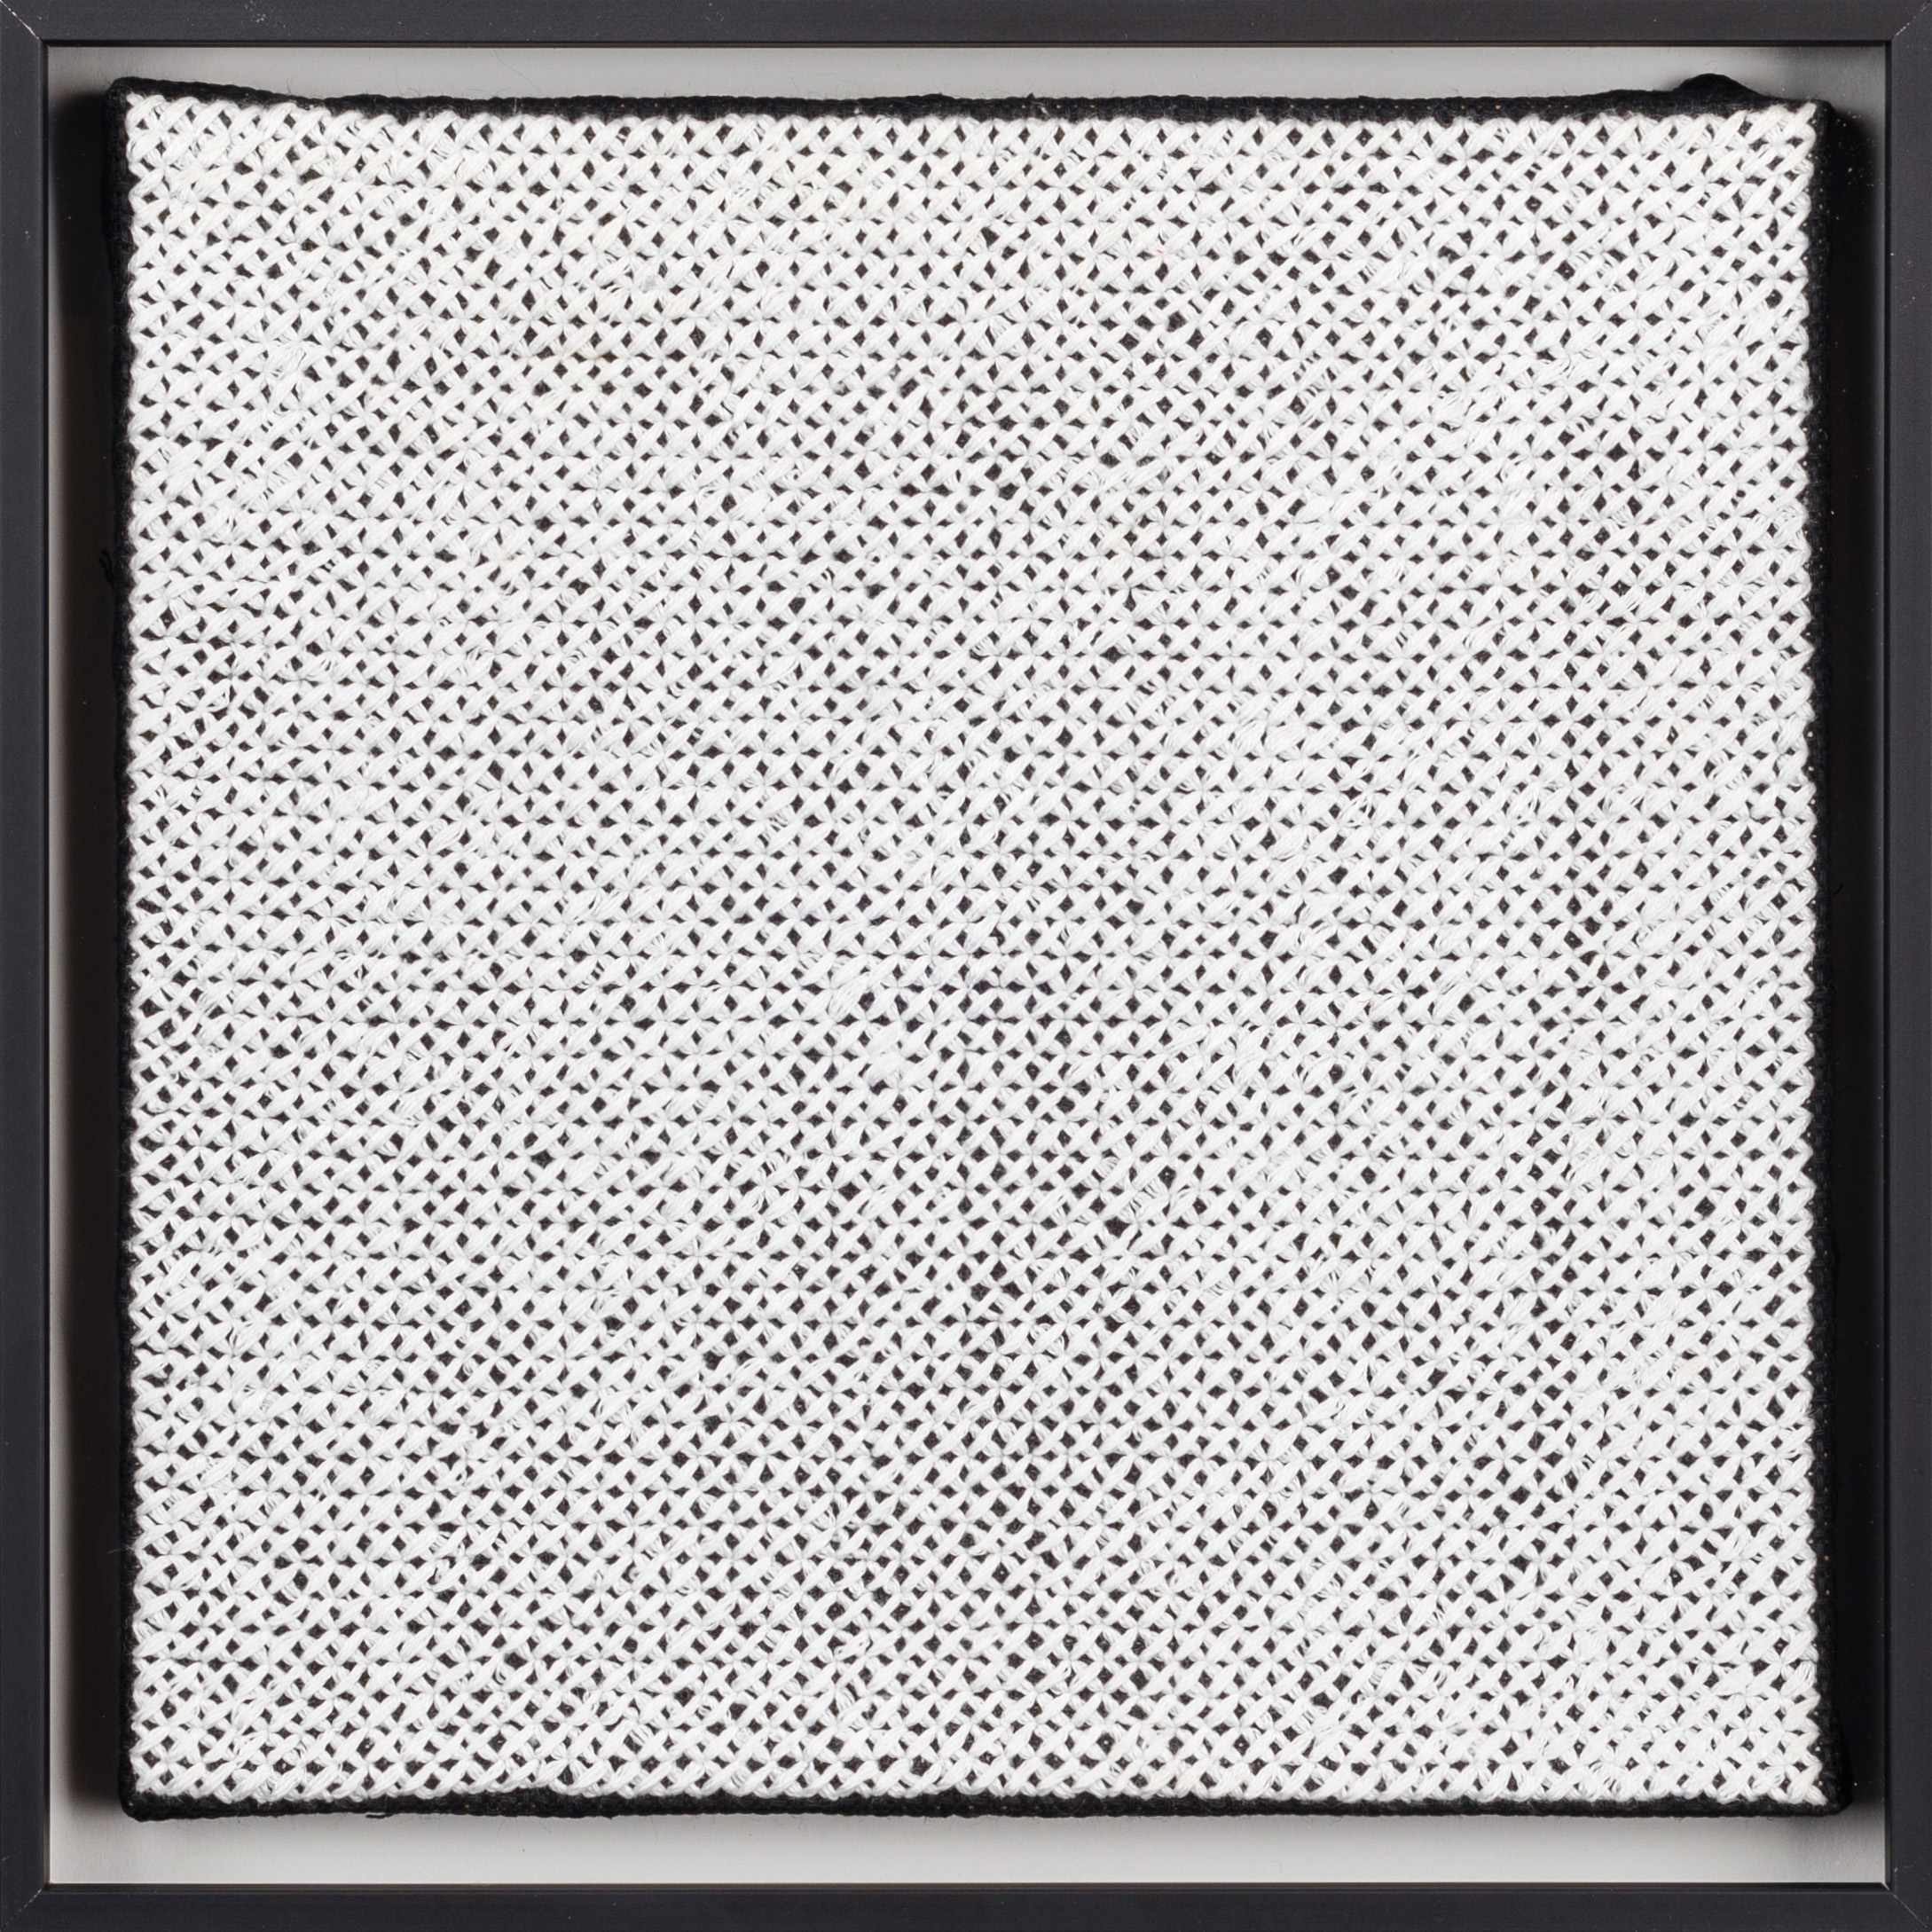 PIERRE LE RICHE. White on black, 2016. Cross-stitch embroidery on Aida cloth. 2500 stitched. 205 x 205mm. Framed.jpg